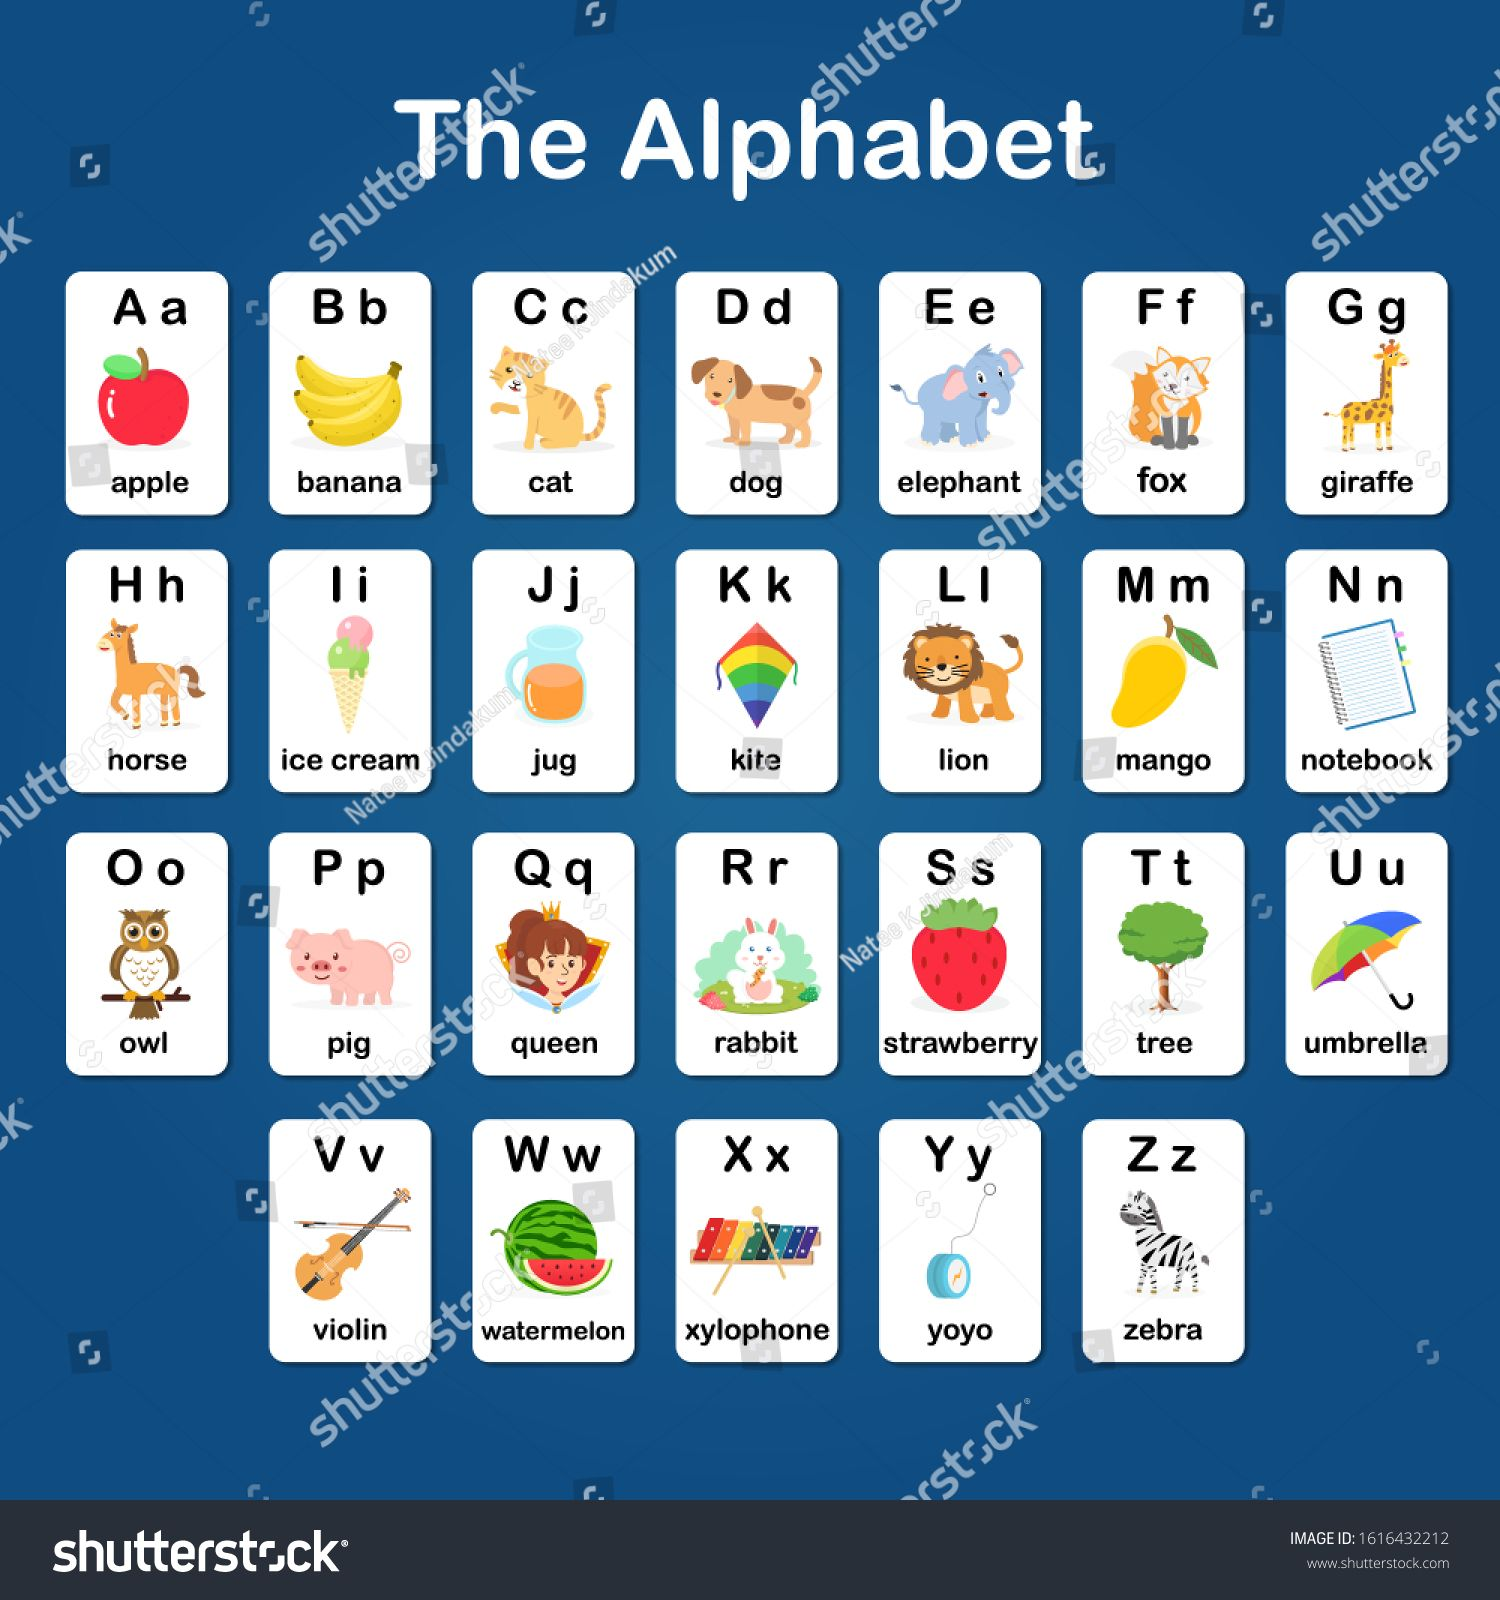 English vocabulary and alphabet flash card vector for kids to help learning and education in kindergarten children. Words of letter abc to z ,each card isolated on blue background. #Ad , #Affiliate, #vector#card#learning#kids